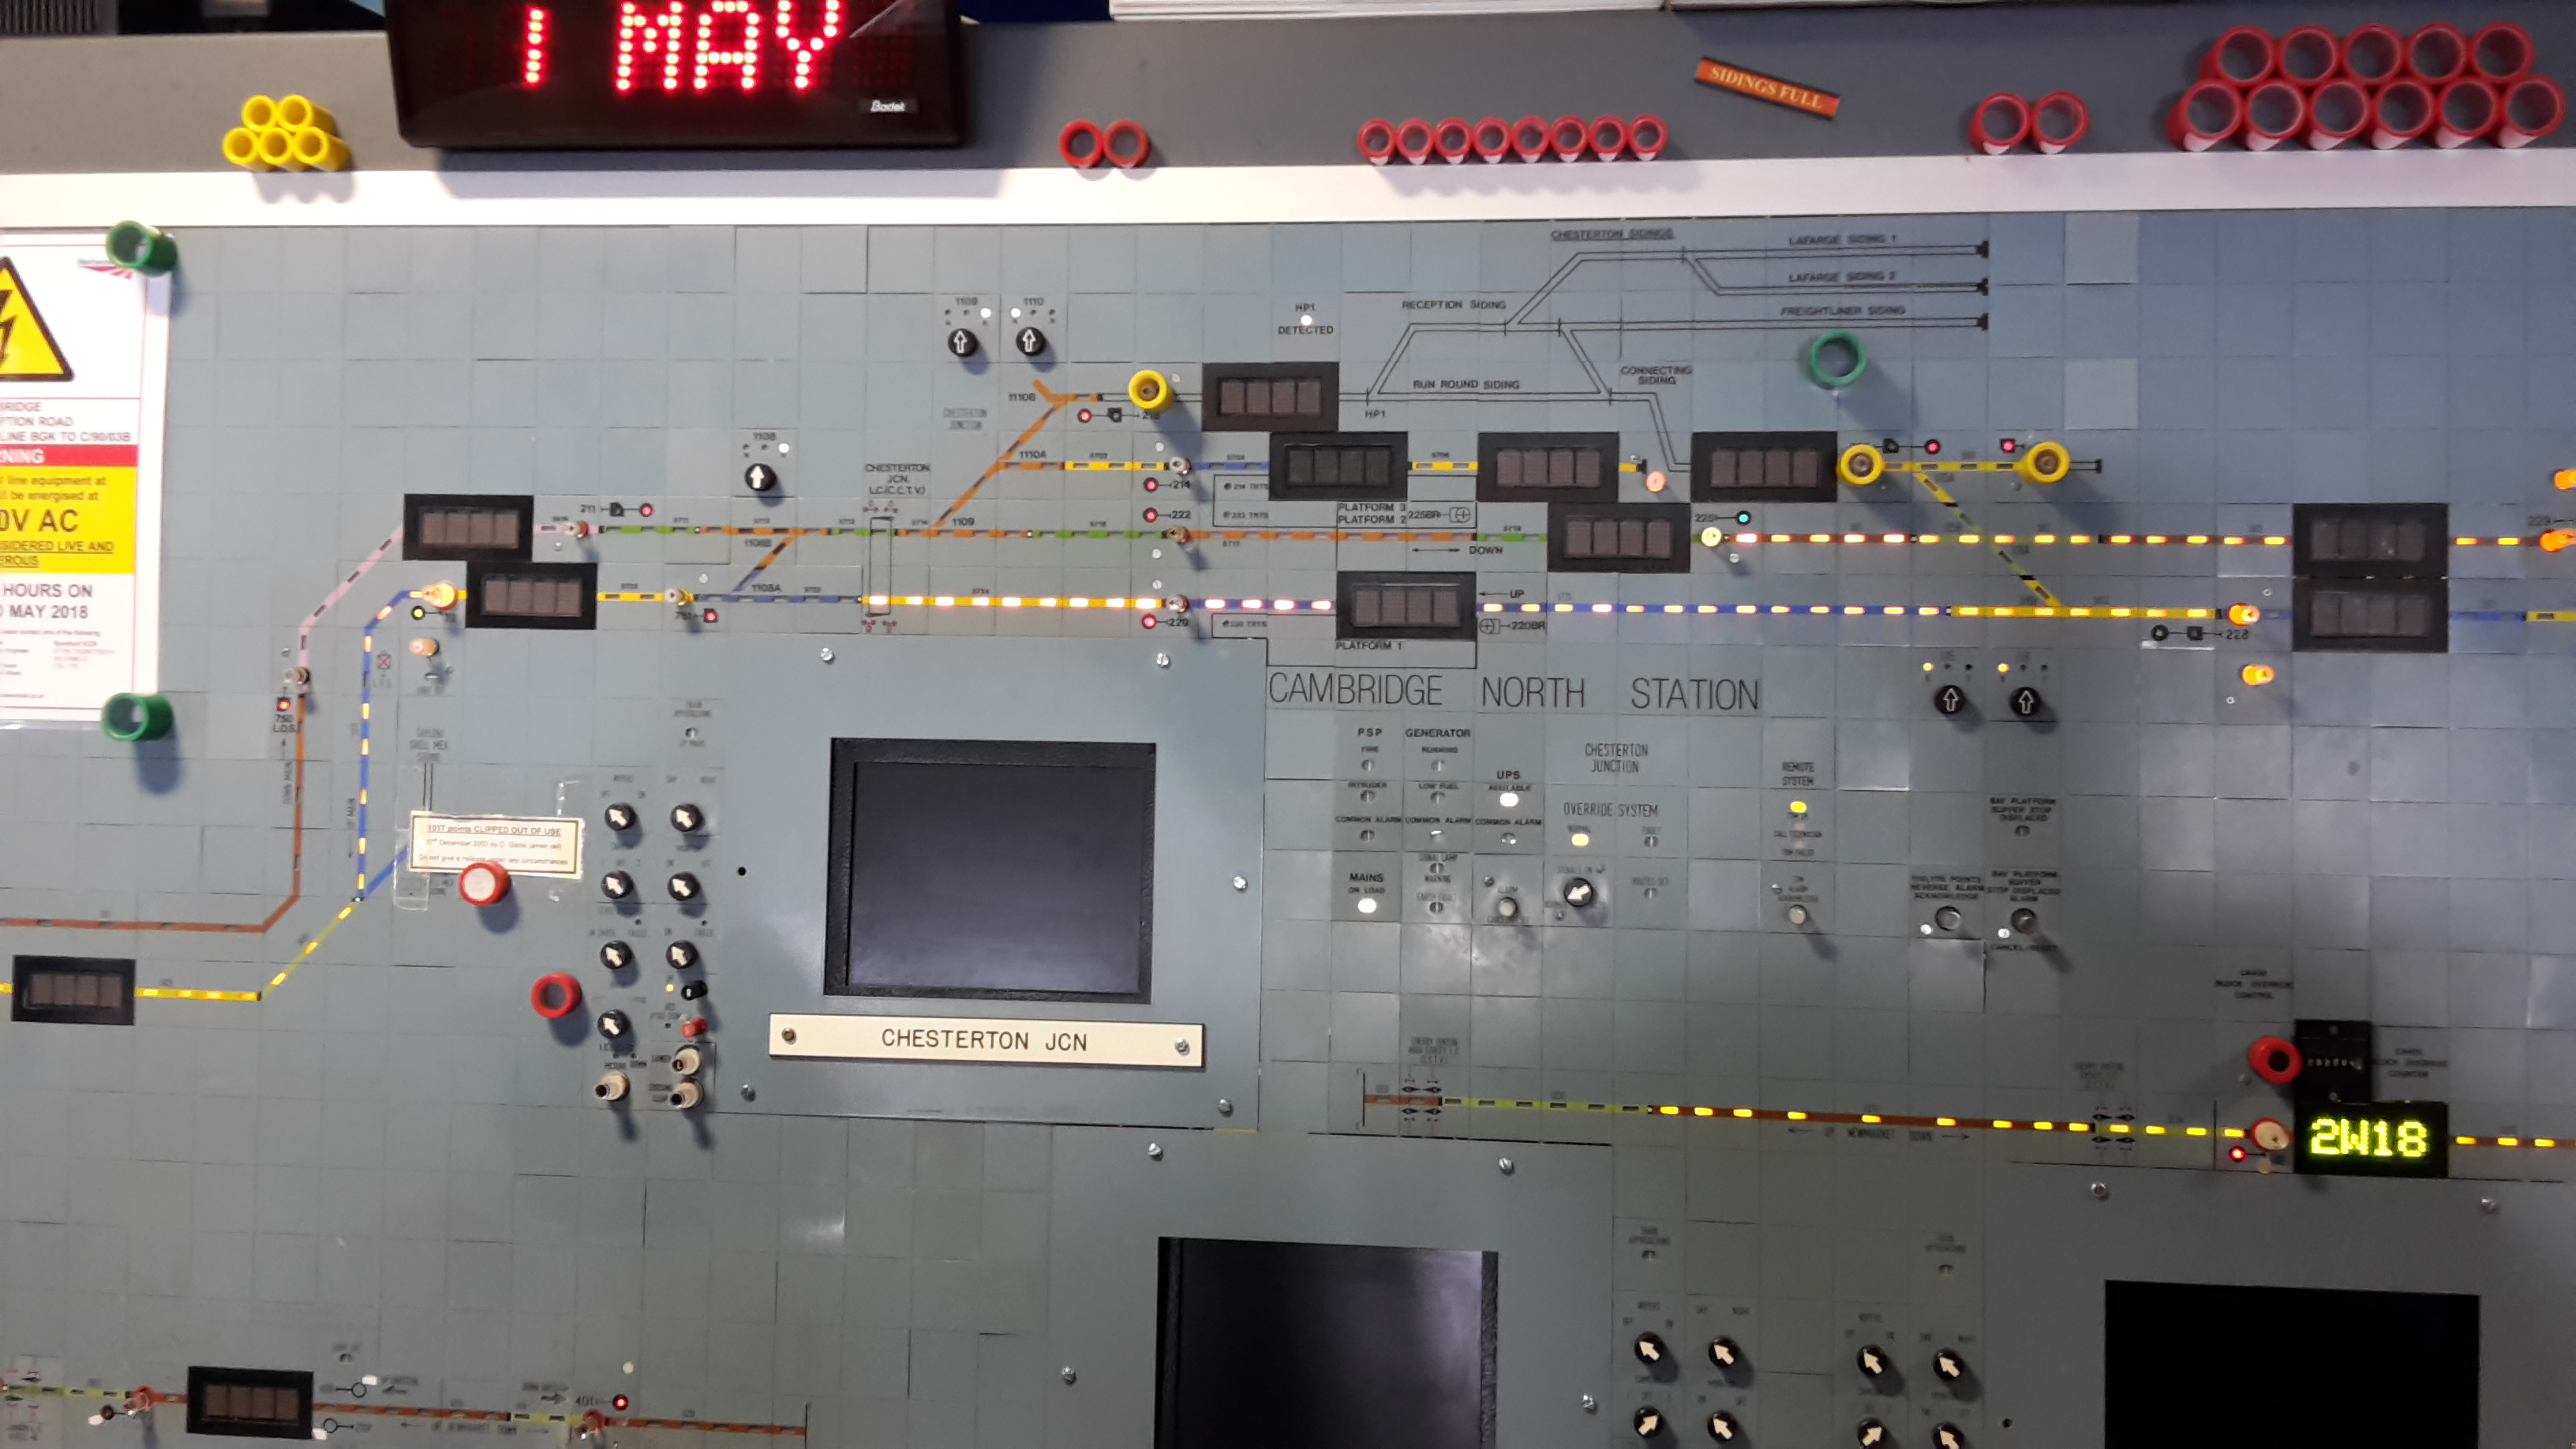 The Cambridge Signalbox panel, showing the display for Chesterton Jn Level Crossing